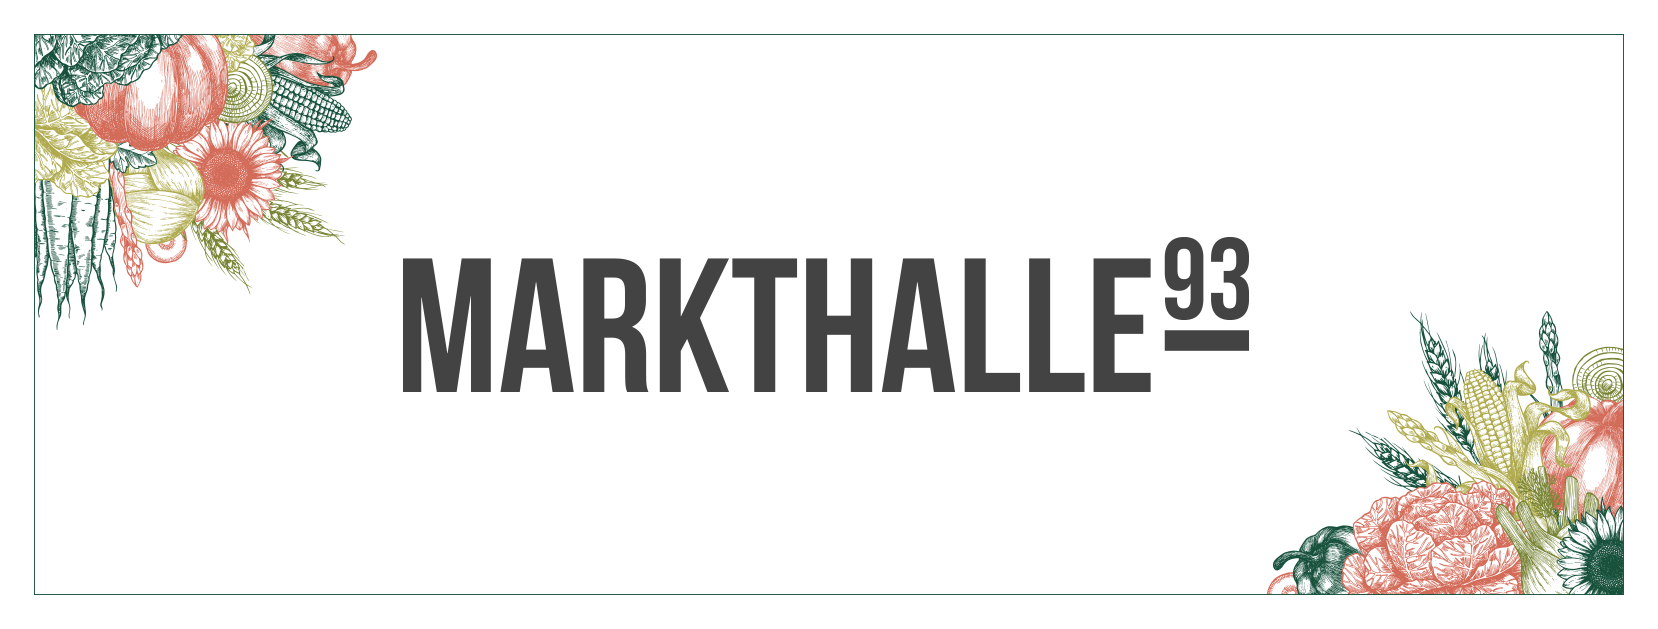 Markthalle 93.png